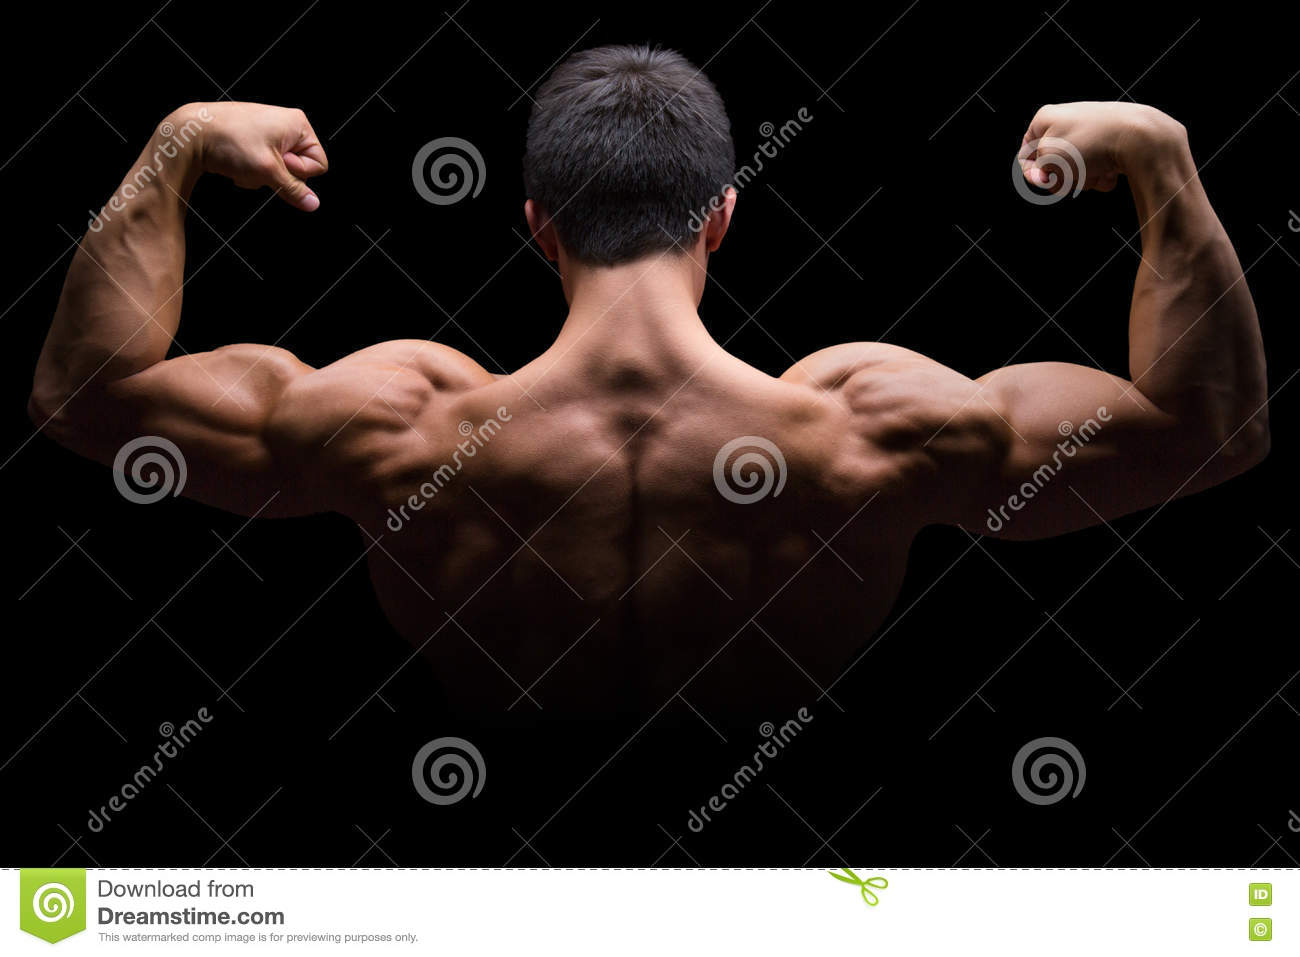 Bodybuilder bodybuilding flexing muscles posing back biceps strong muscular isolated on black